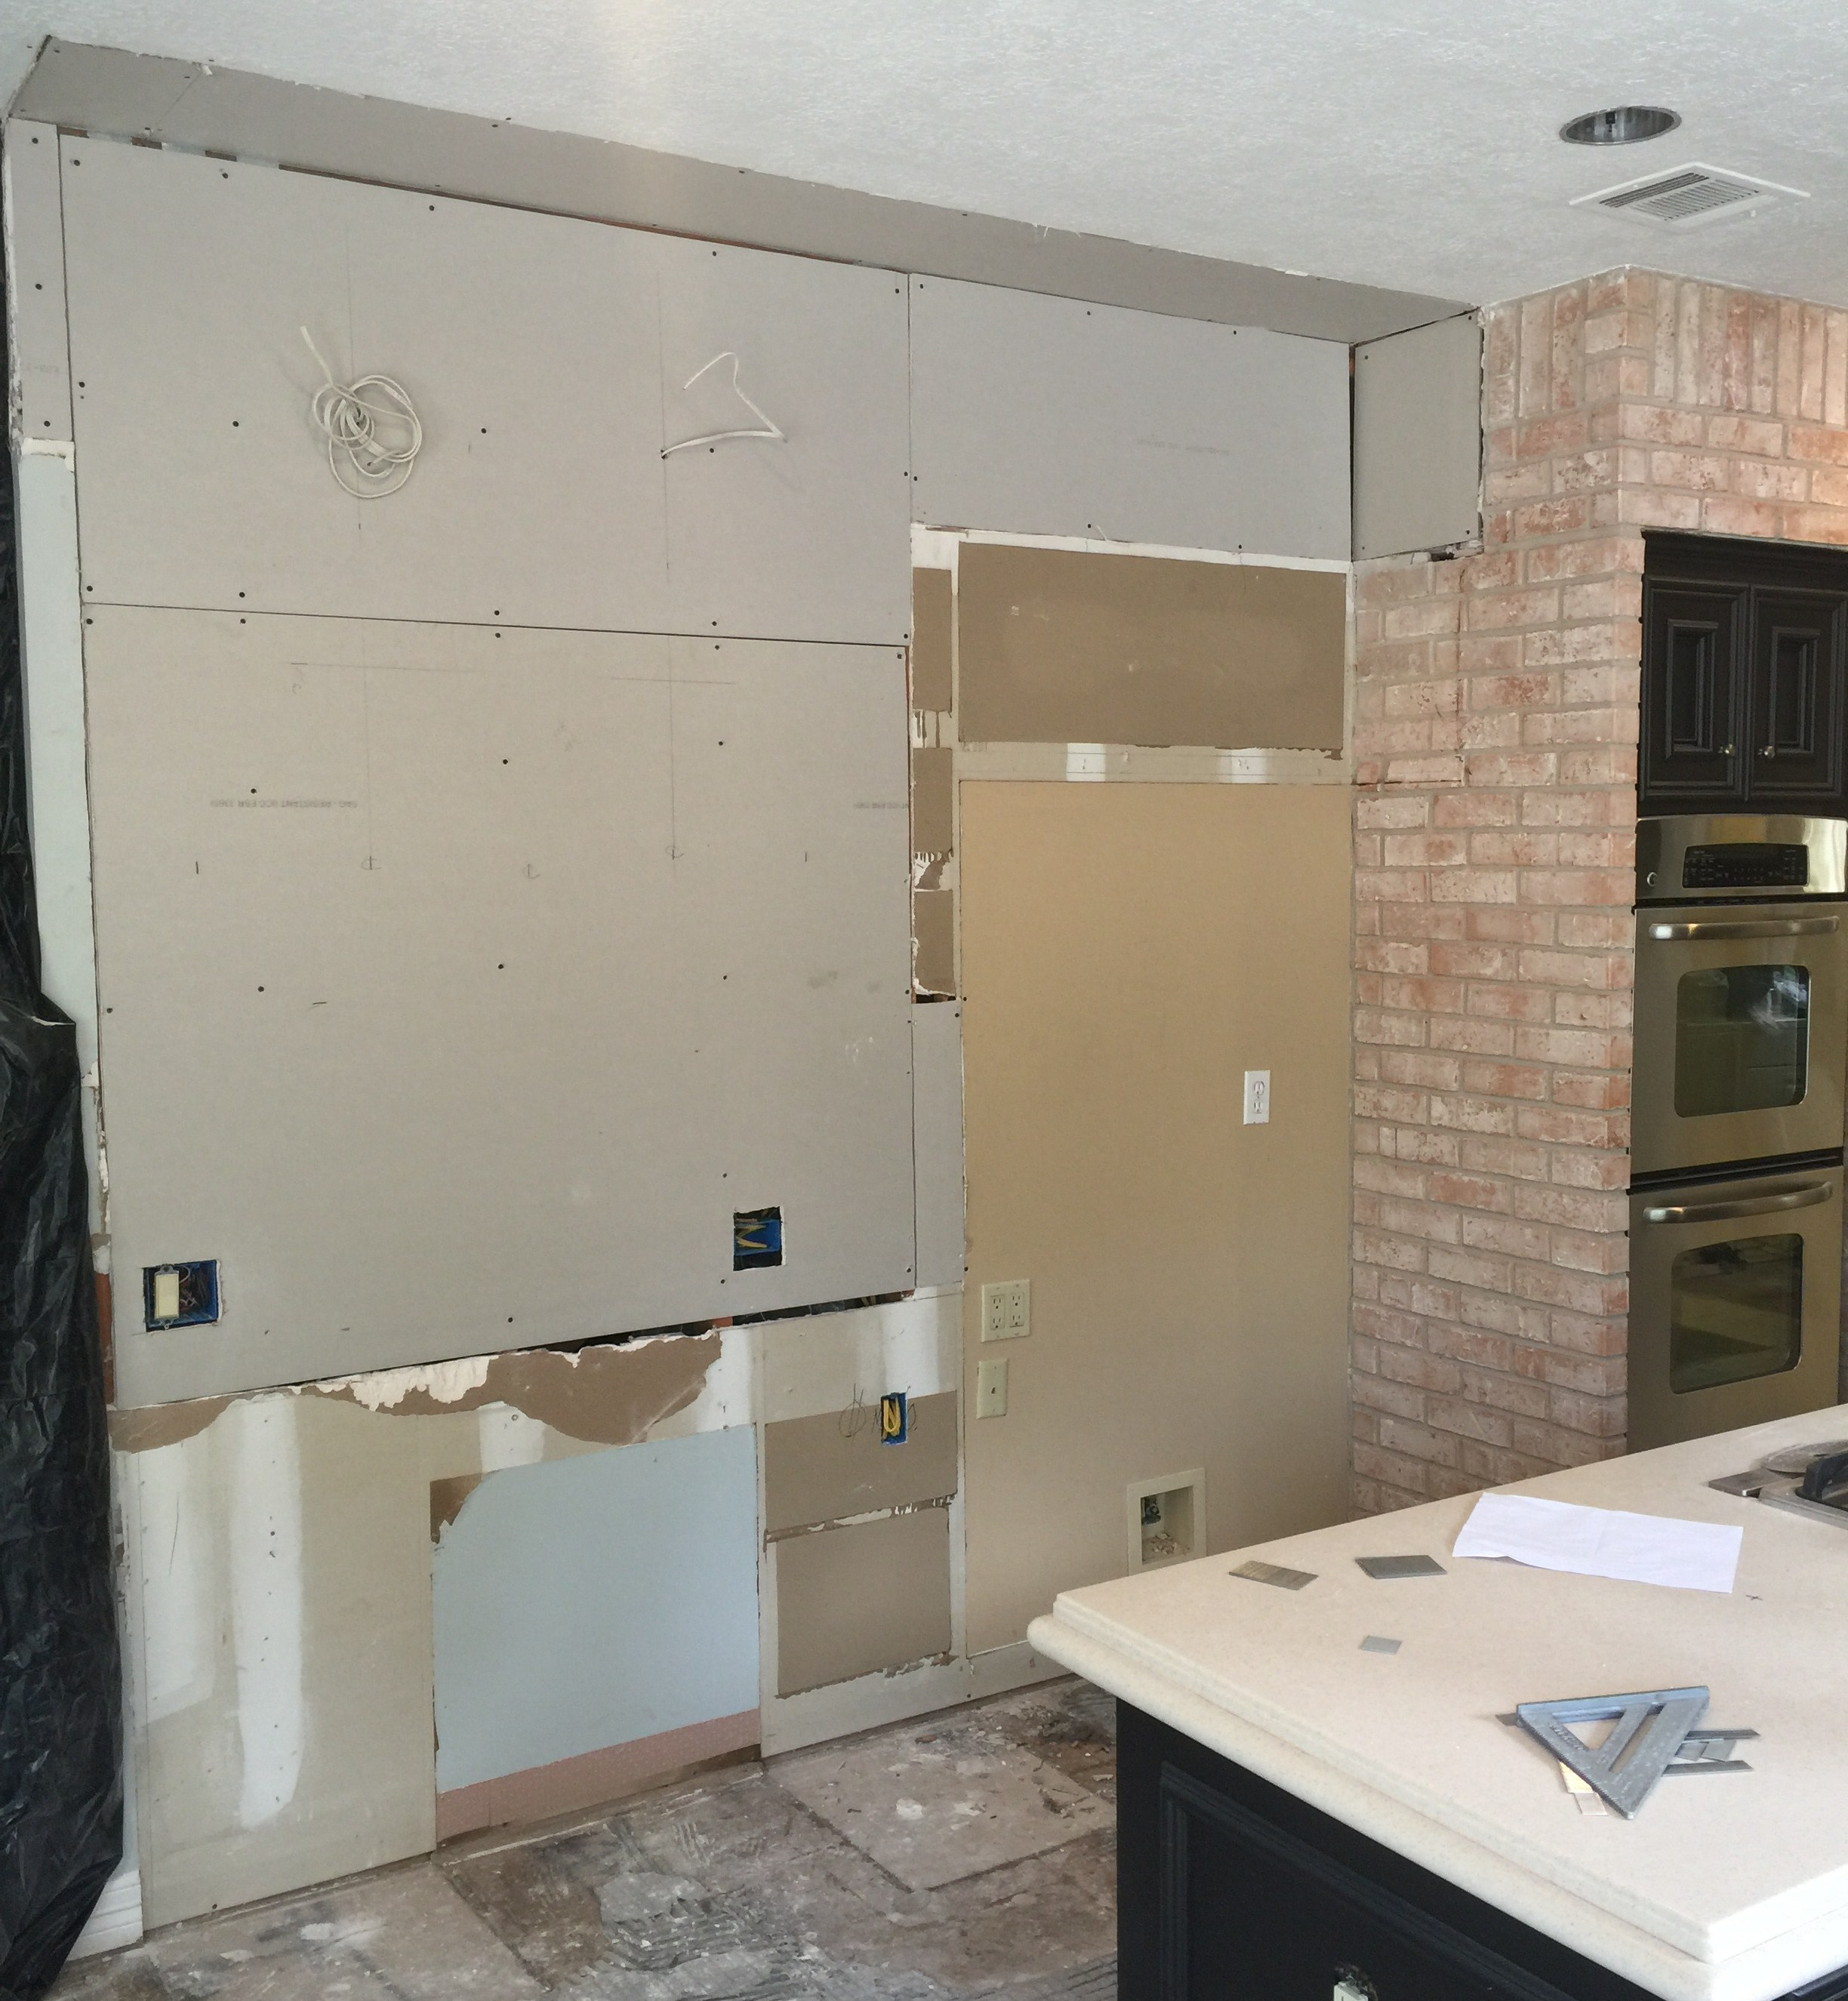 Progress Shot - New full height refrigerator cabinet to go in with new lower cabs and open shelving above